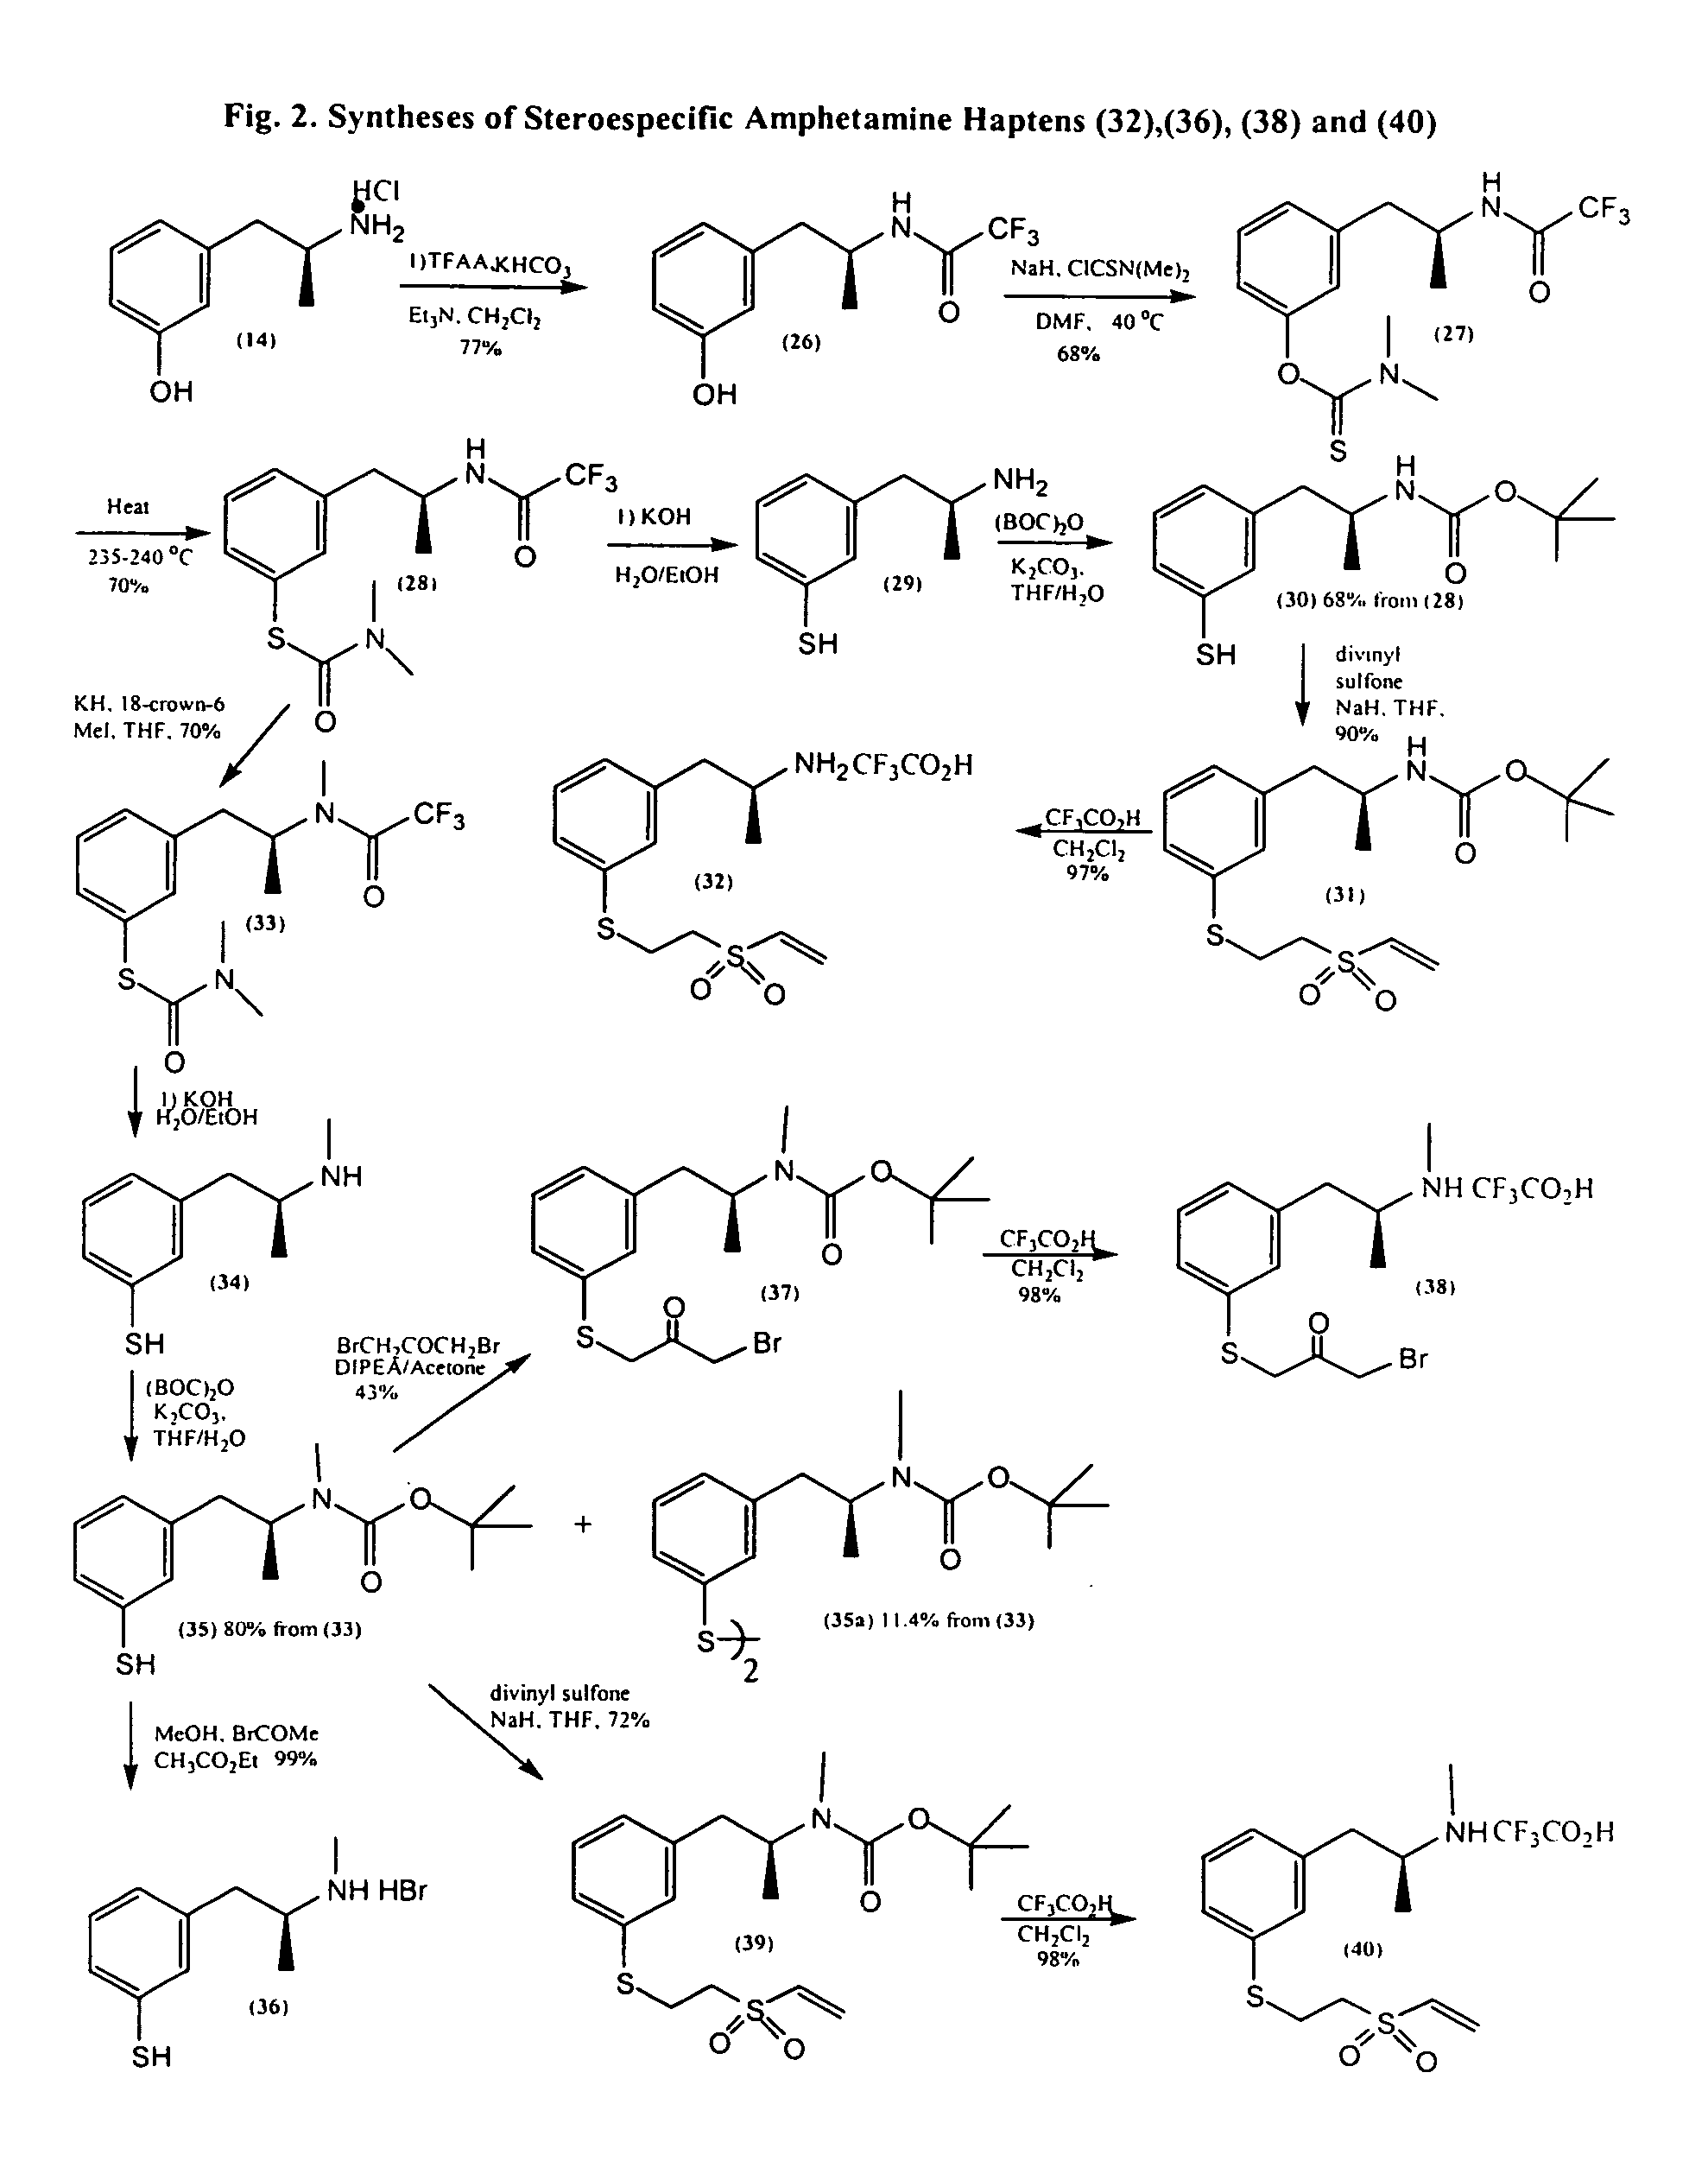 amphetamine sythesis Amphetamine syntheses pdf amphetamine syntheses pdf amphetamine syntheses pdf download direct download amphetamine synthesis pdf within the synthesis of amphetamine, these stereoselective transformations have.